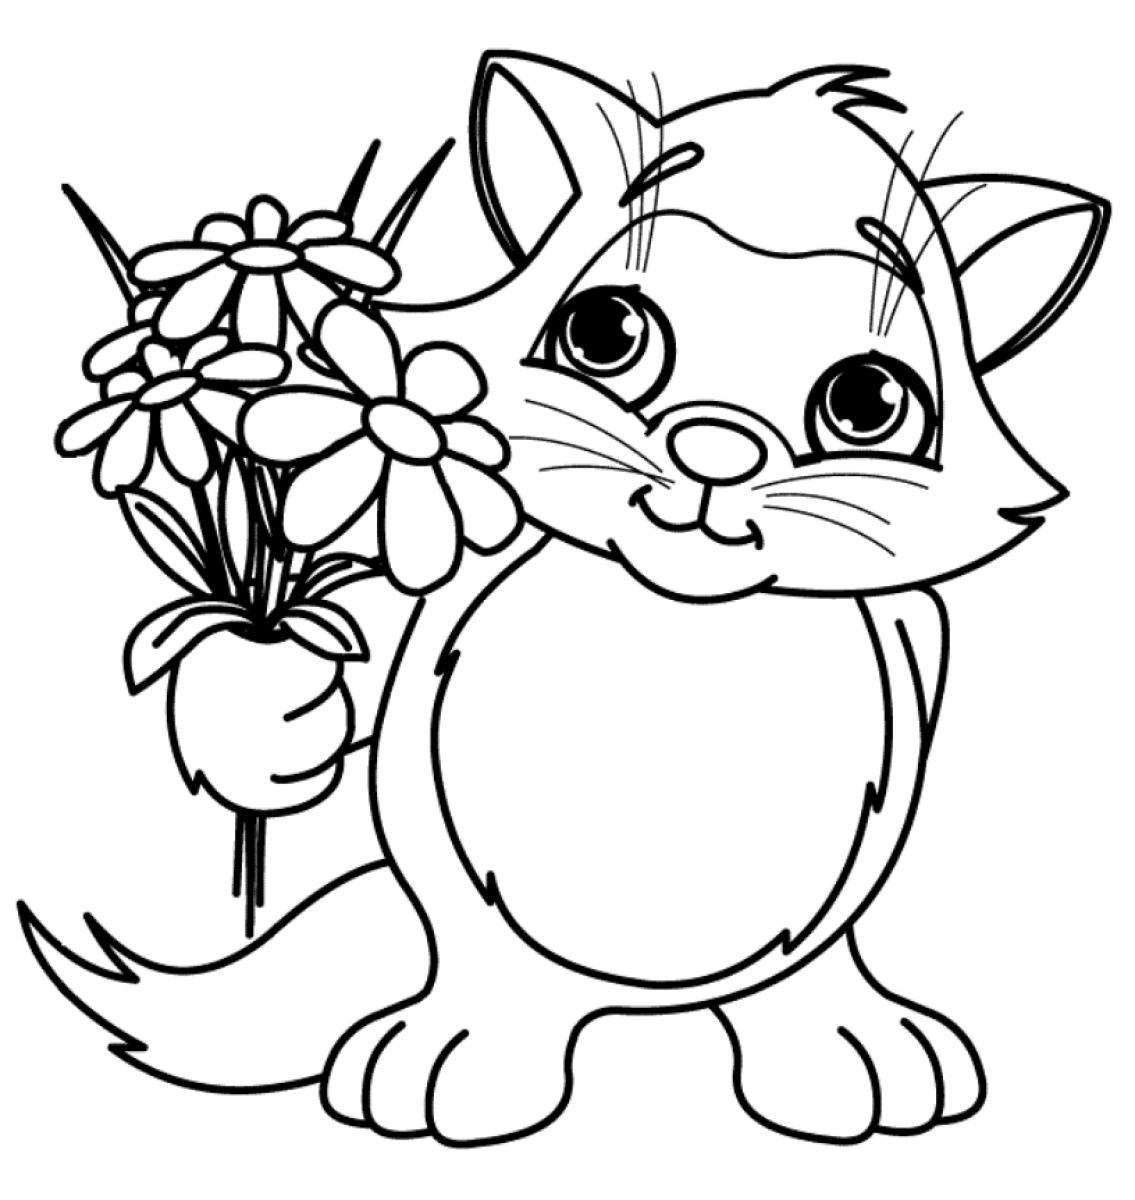 free flower coloring sheets free printable flower coloring pages for kids best flower sheets coloring free